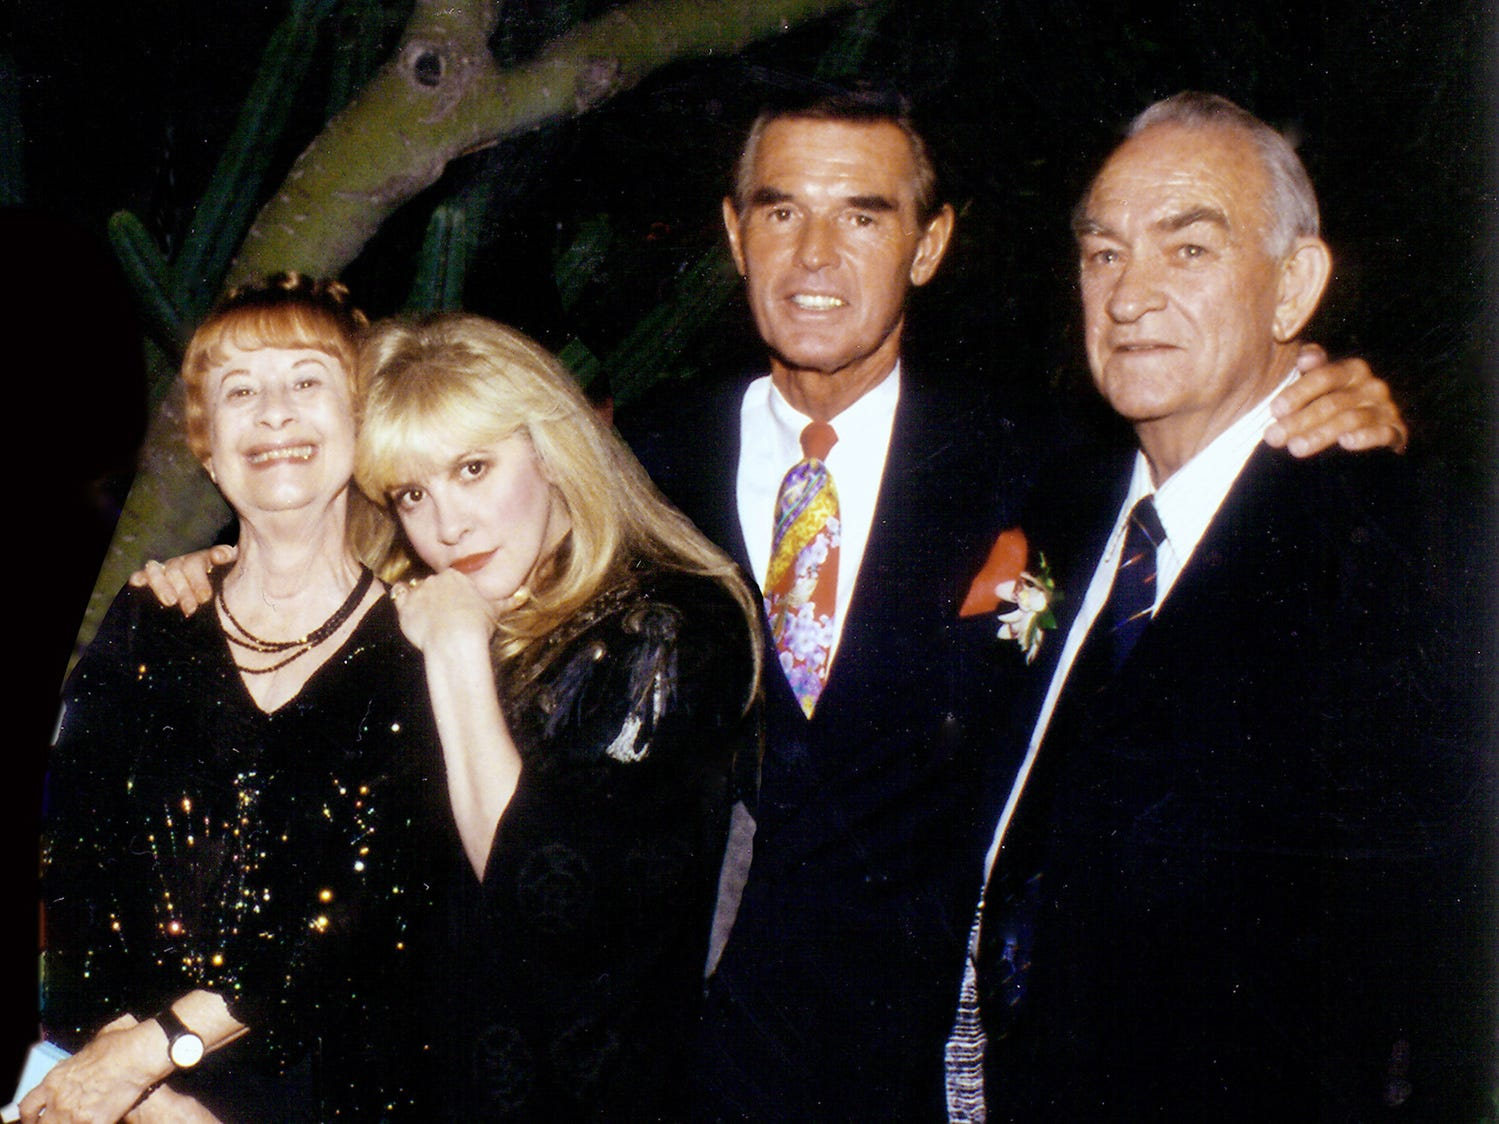 Barbara and Stevie Nicks, Dr. Ted Diethrich and Jess Nicks at a benefit concert for the Arizona Heart Association in 1998.  A previous version of this caption misspelled Dr. Ted Diethrich.